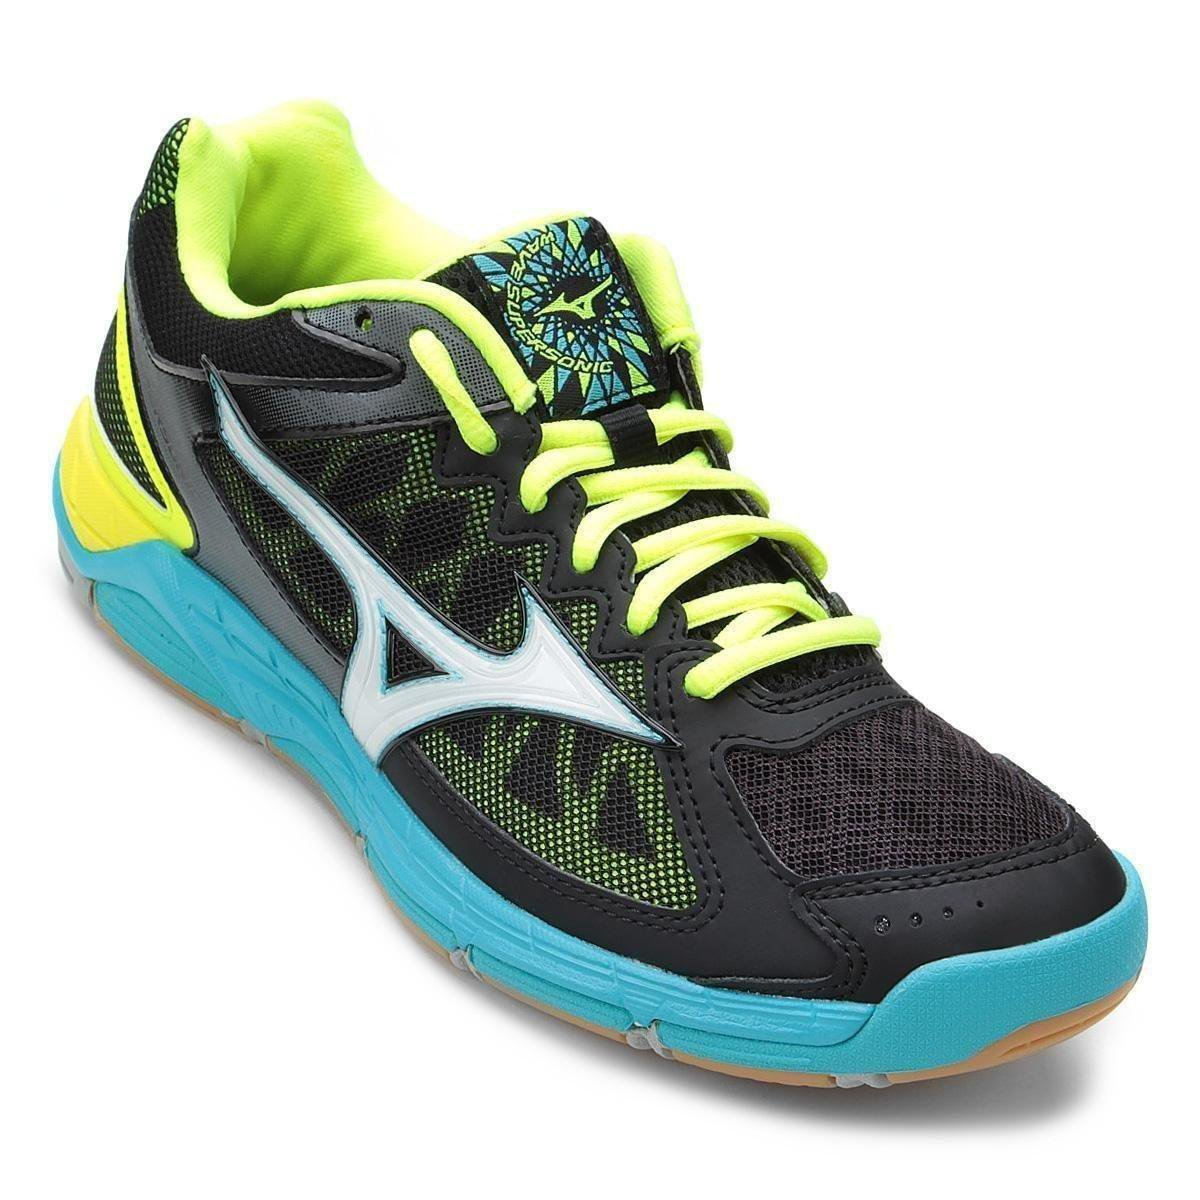 t�nis mizuno wave ultima 9 feminino pre�o mexico review